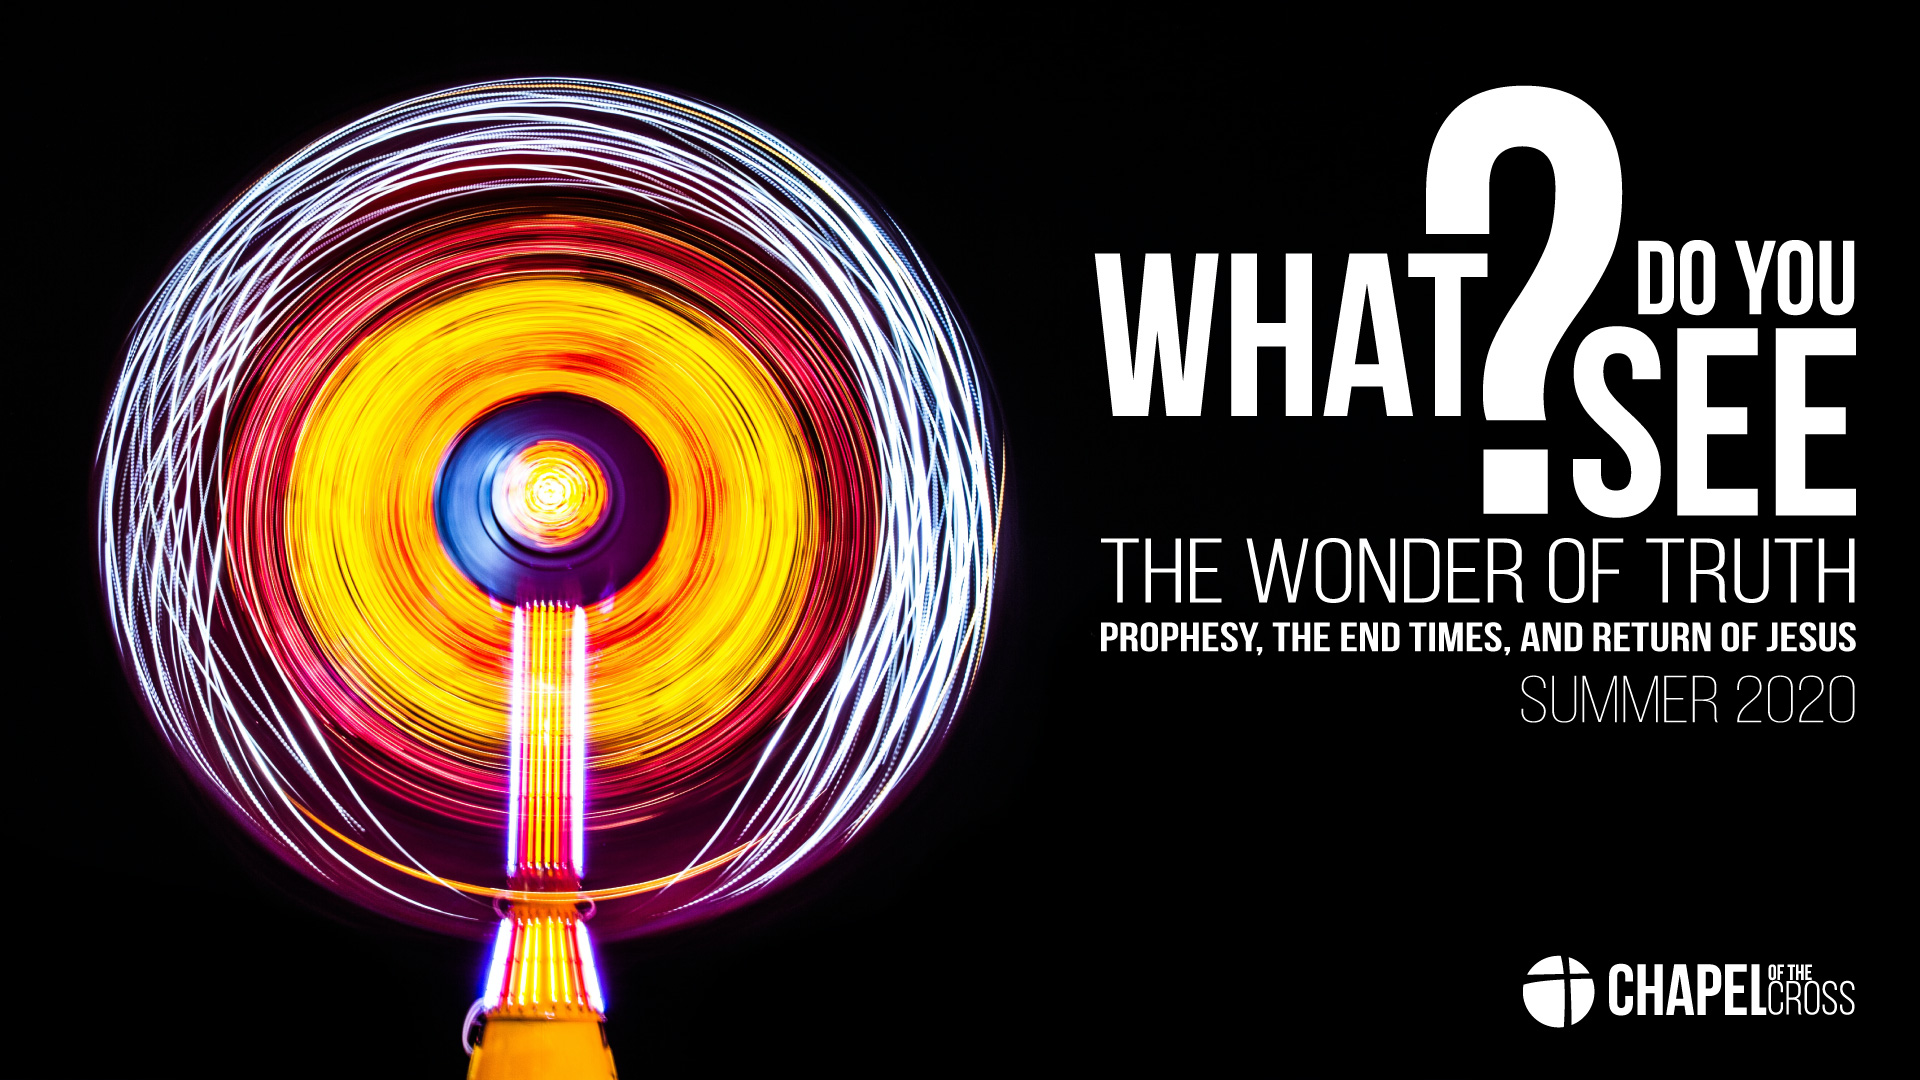 What Do You See? - The Wonder of Truth